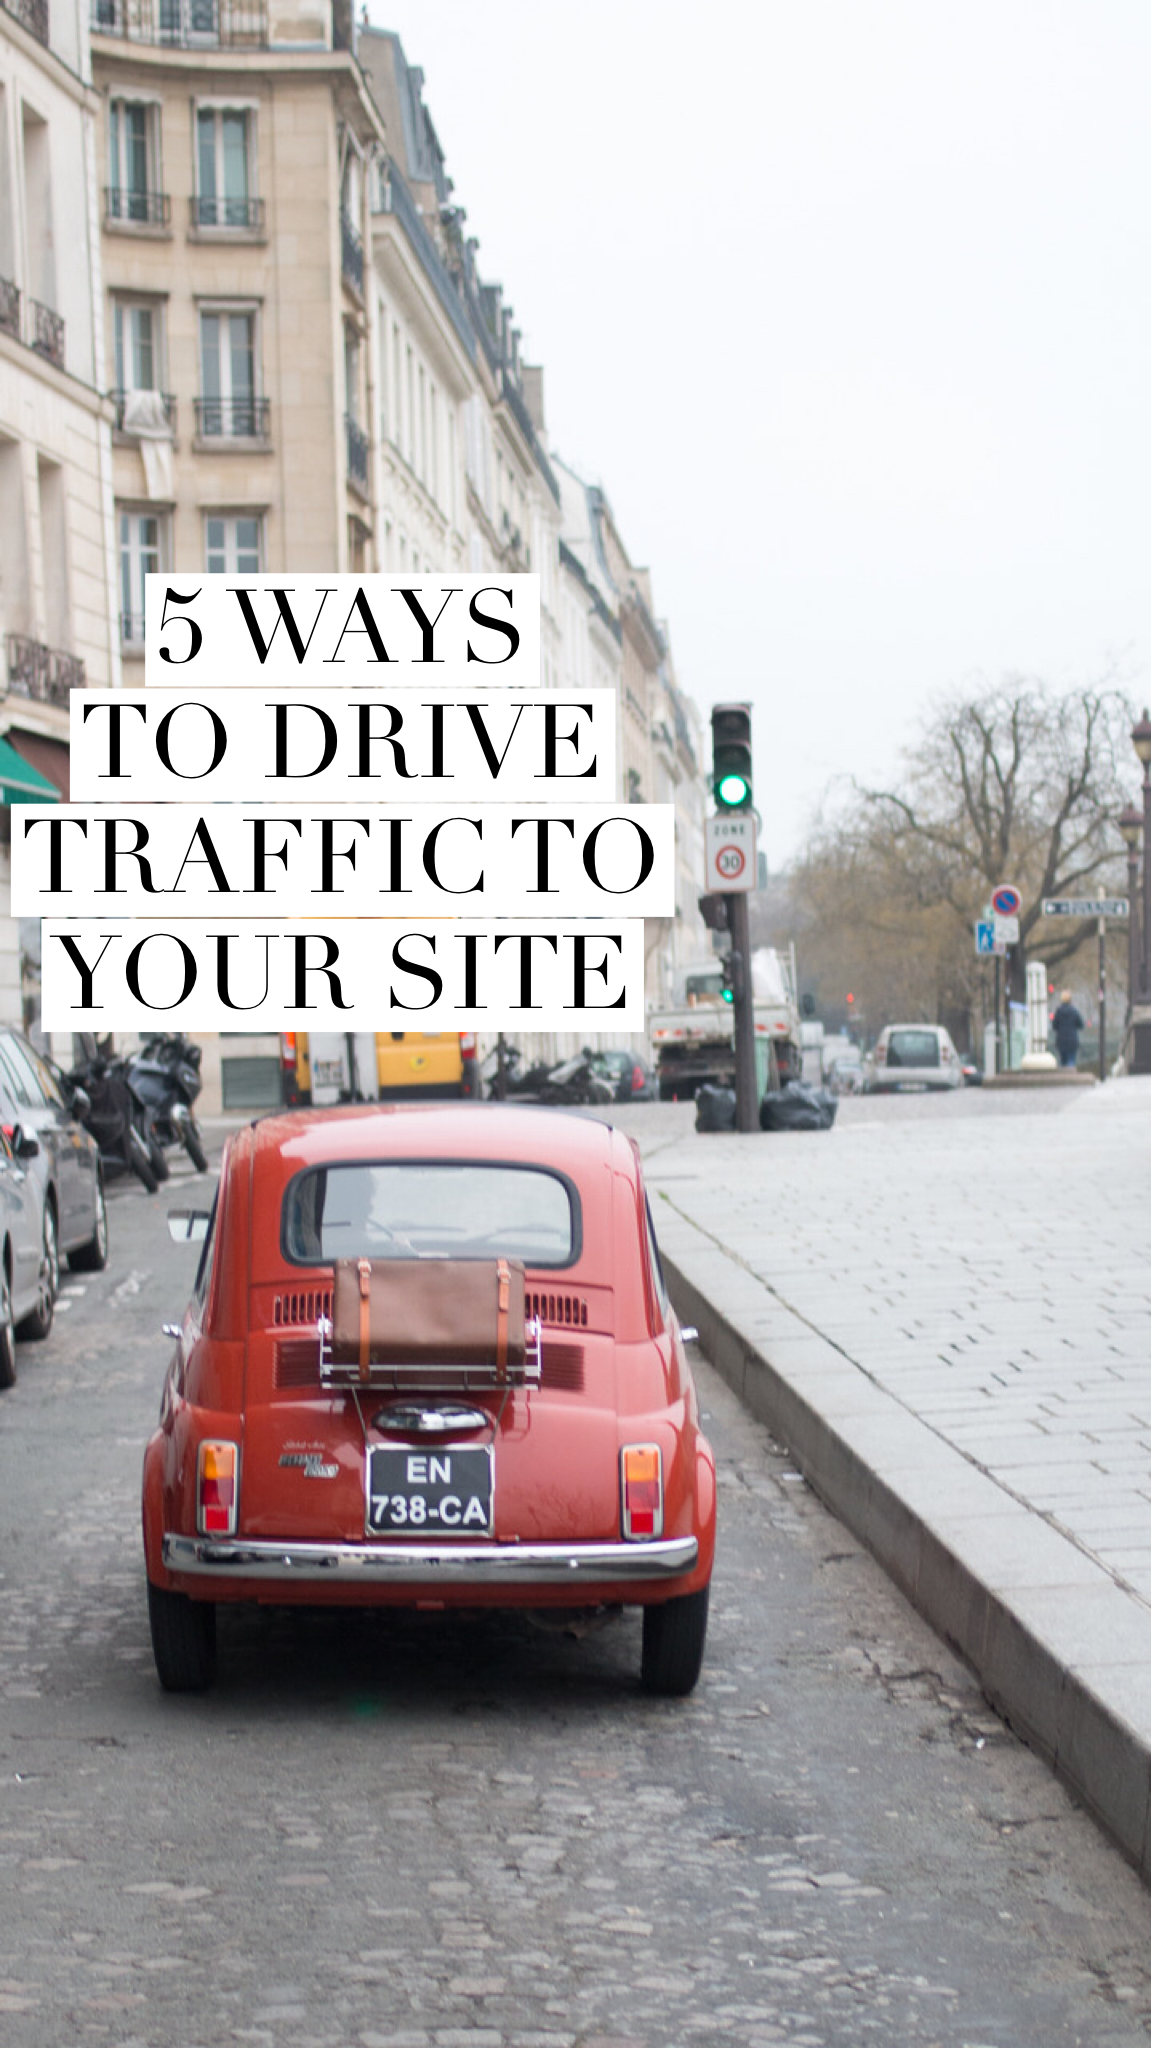 5 ways to bring traffic to your site by everyday parisian